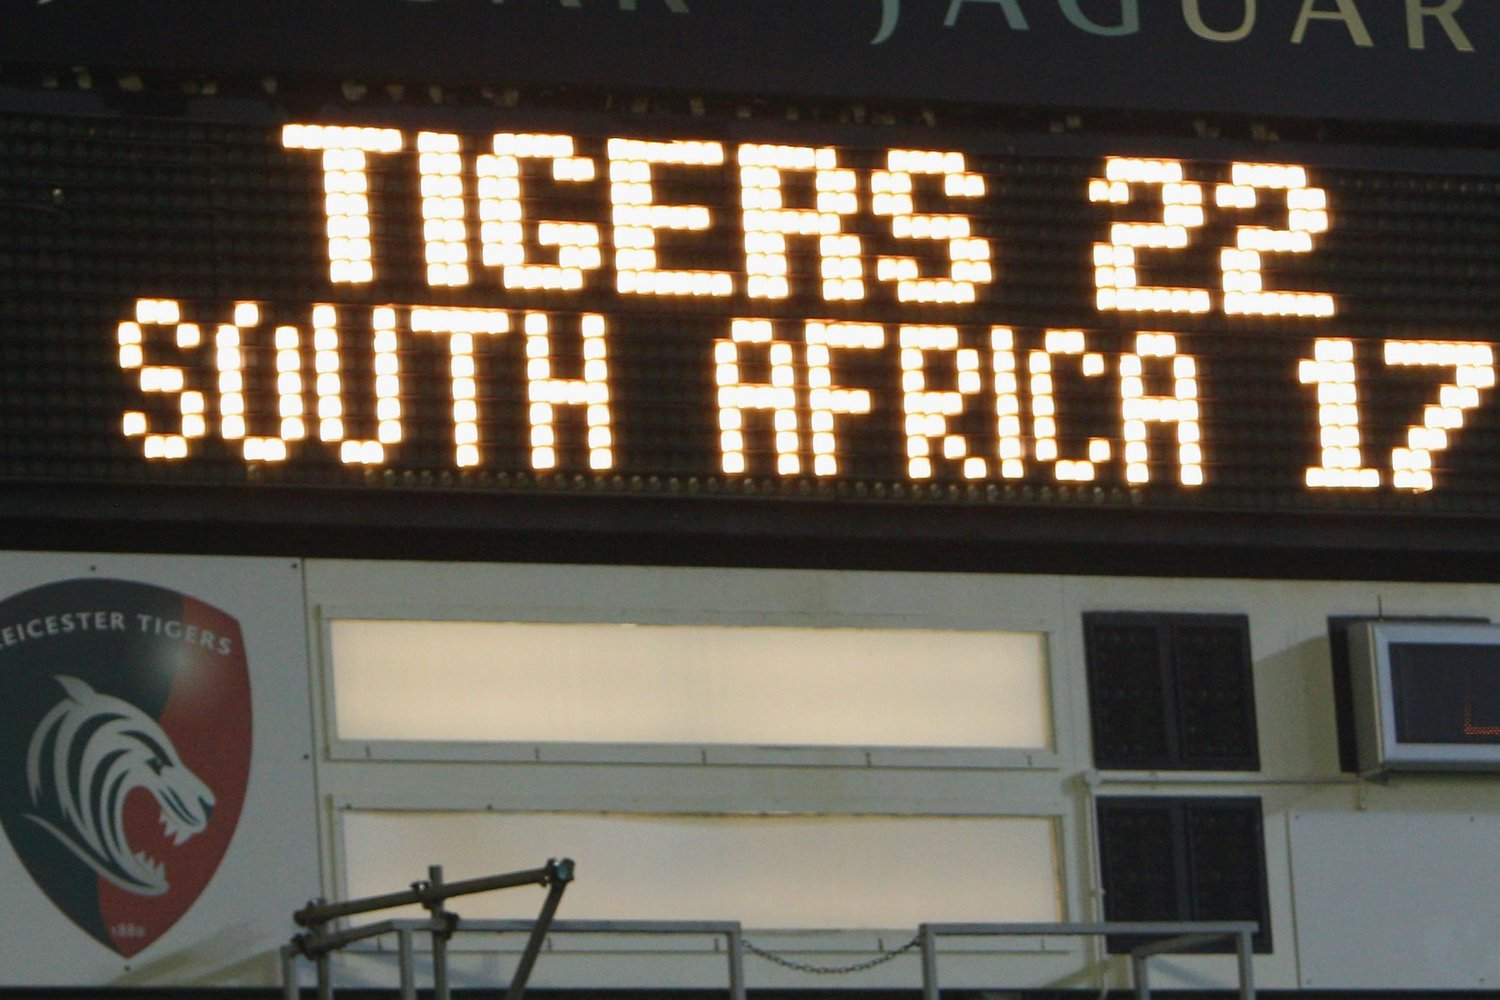 Tigers v South Africa scoreboard